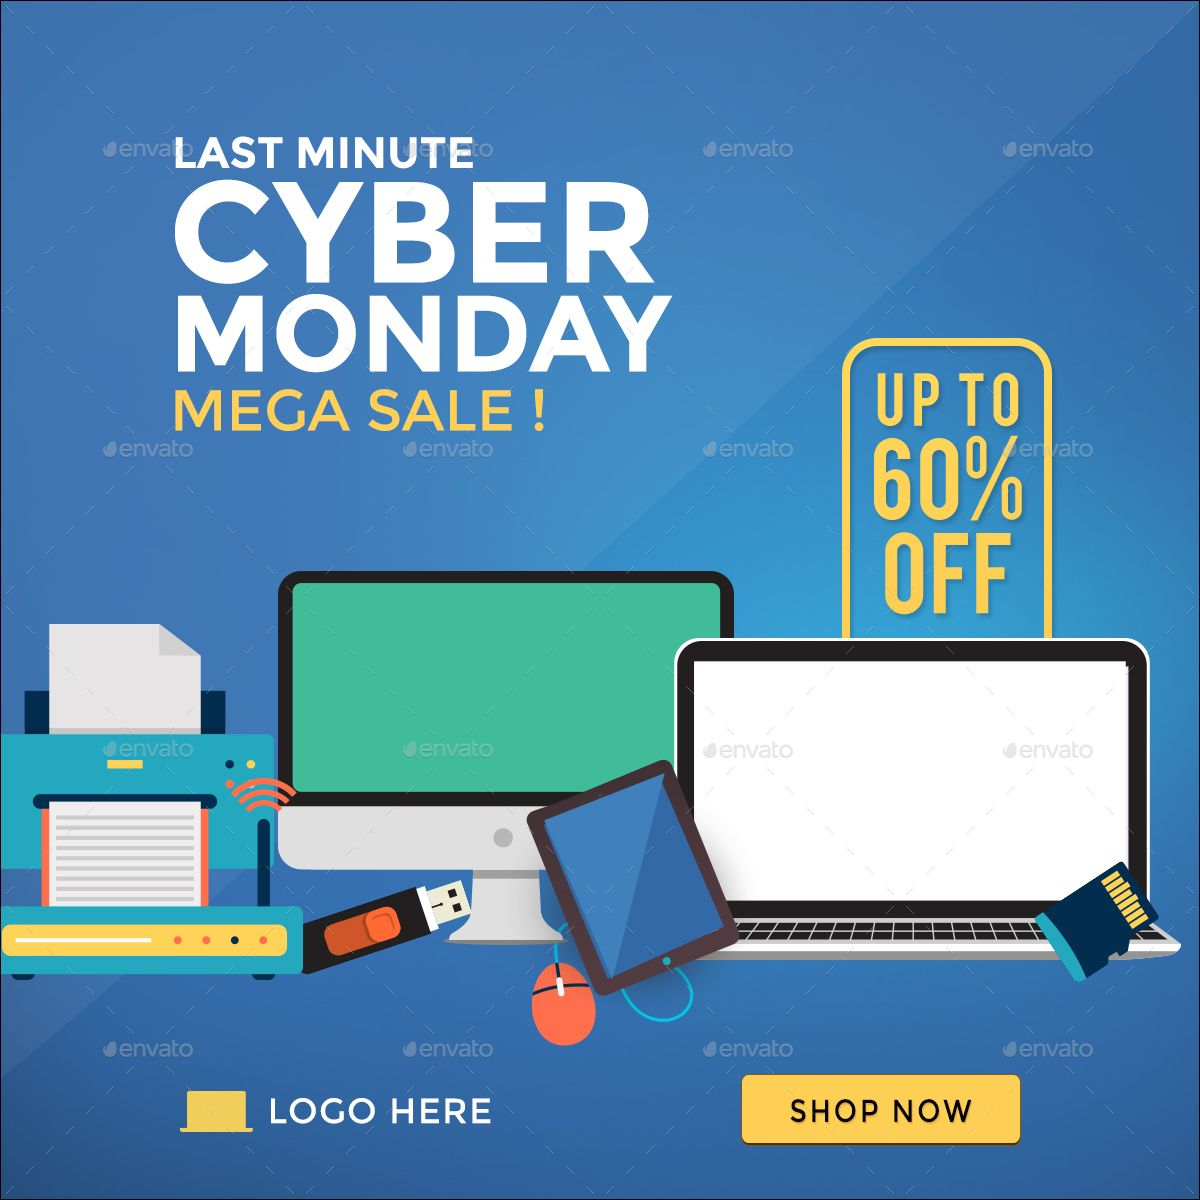 Cyber Monday Banners In 2020 Cyber Monday Banner Banner Sizes Banner Template